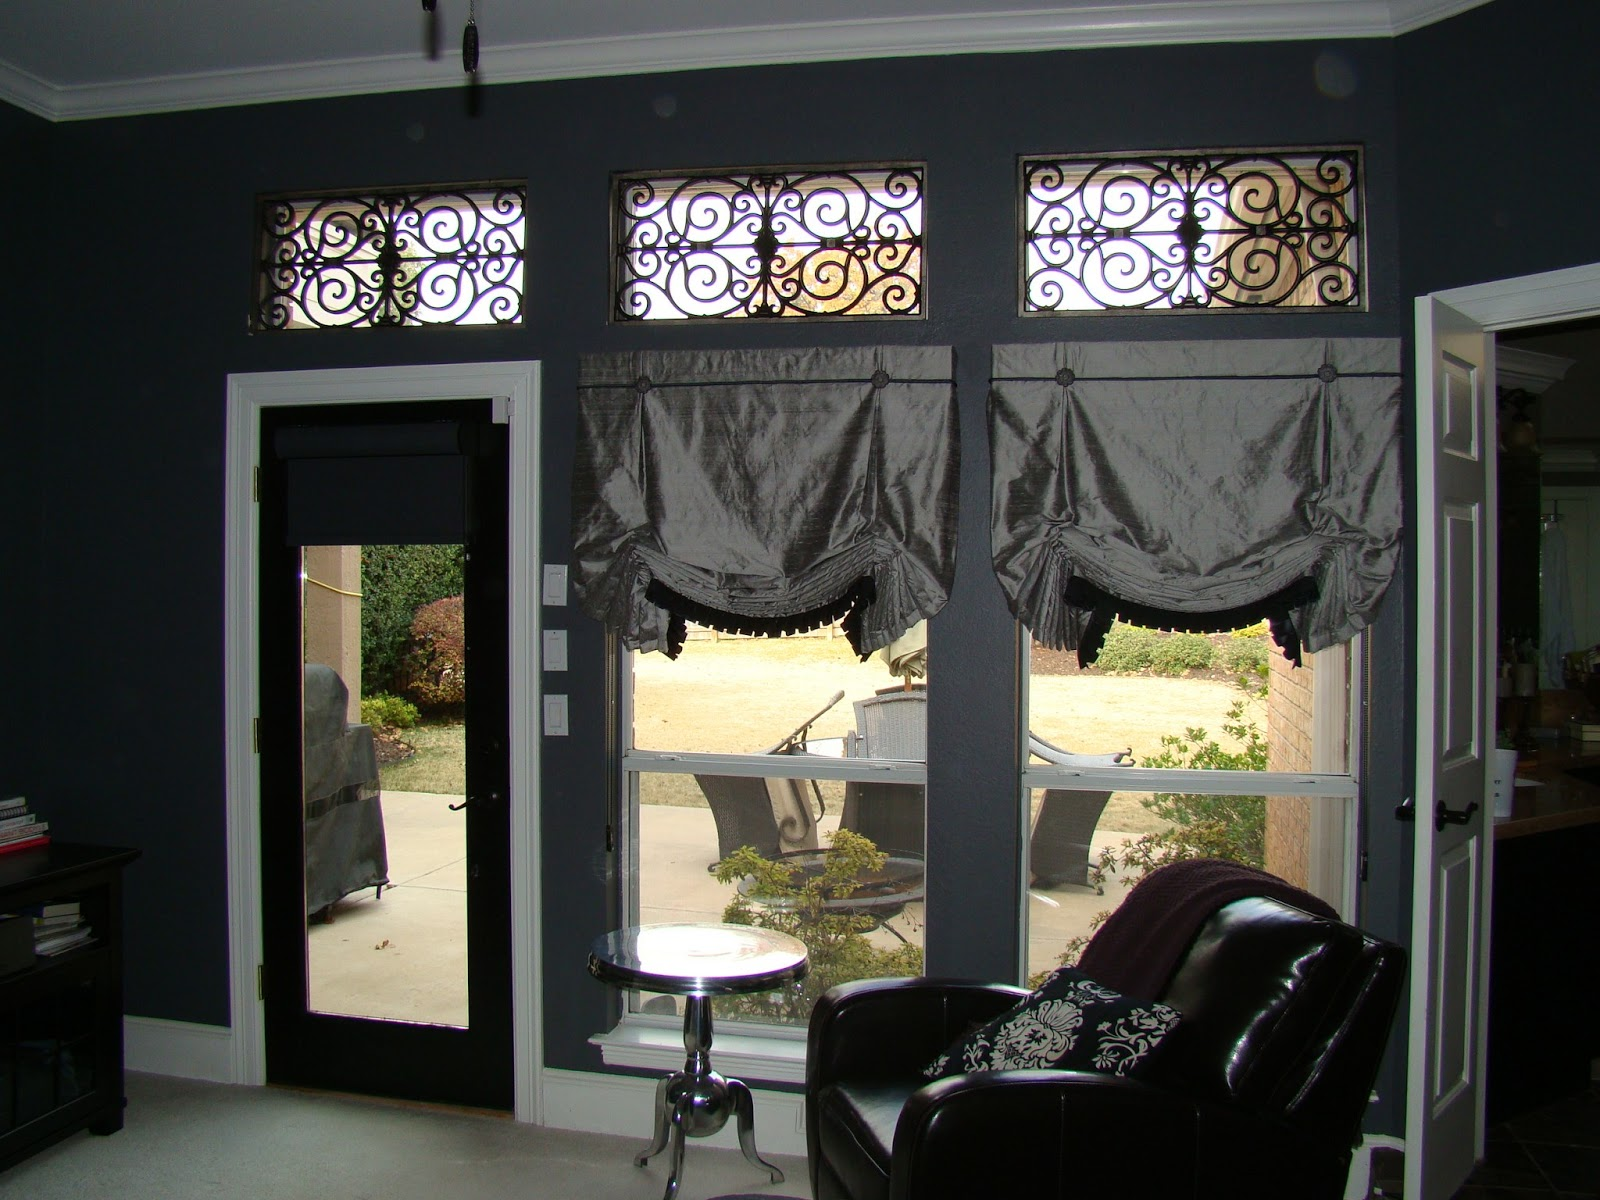 Simple Roller shades in the same charcoal color for privacy and light control Of course we added the faux iron in a pewter finish for the perfect accent in the